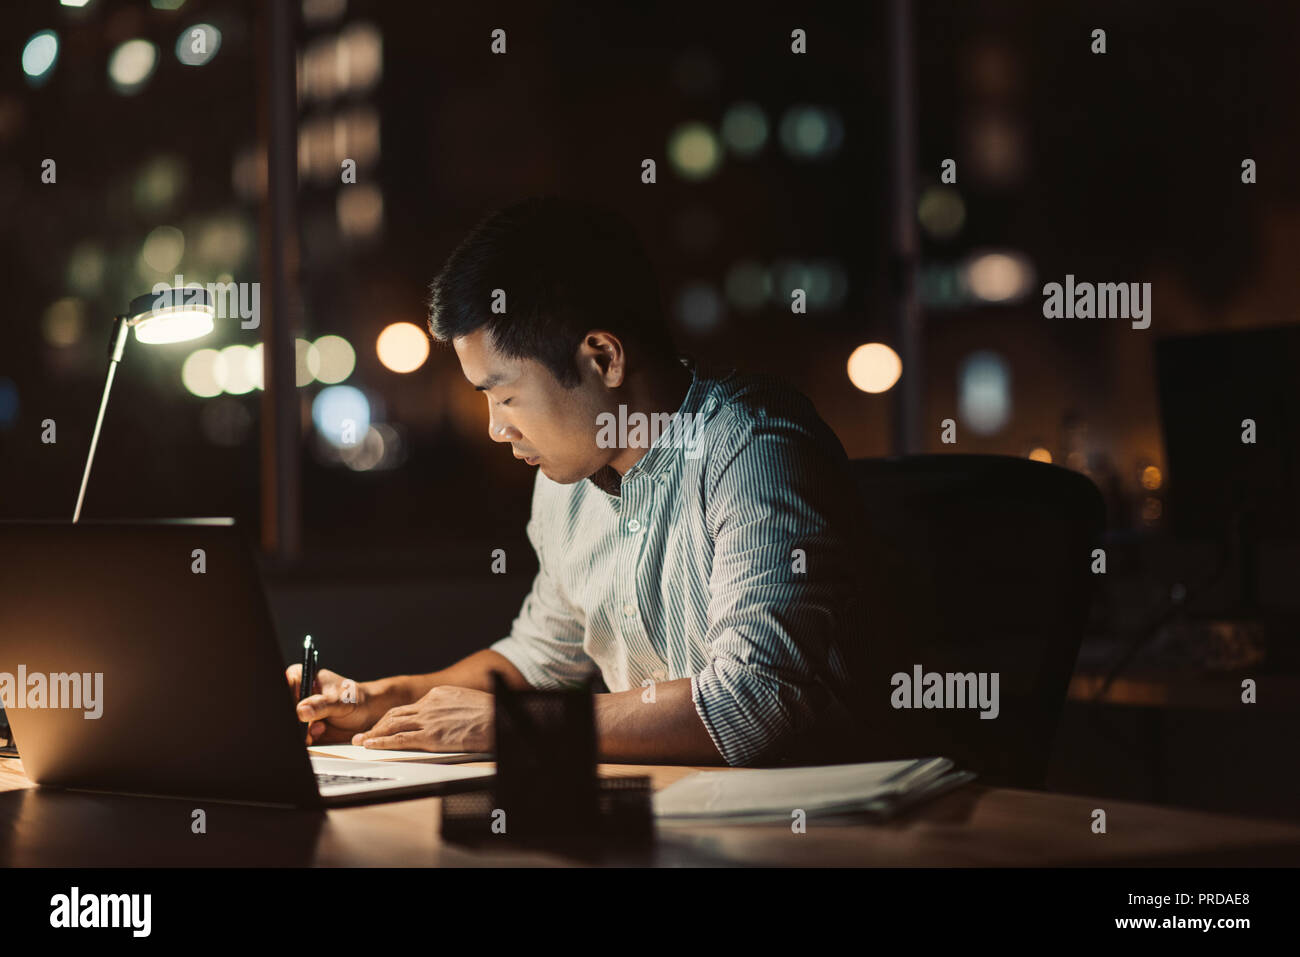 Asian businessman working at his desk late into the evening - Stock Image